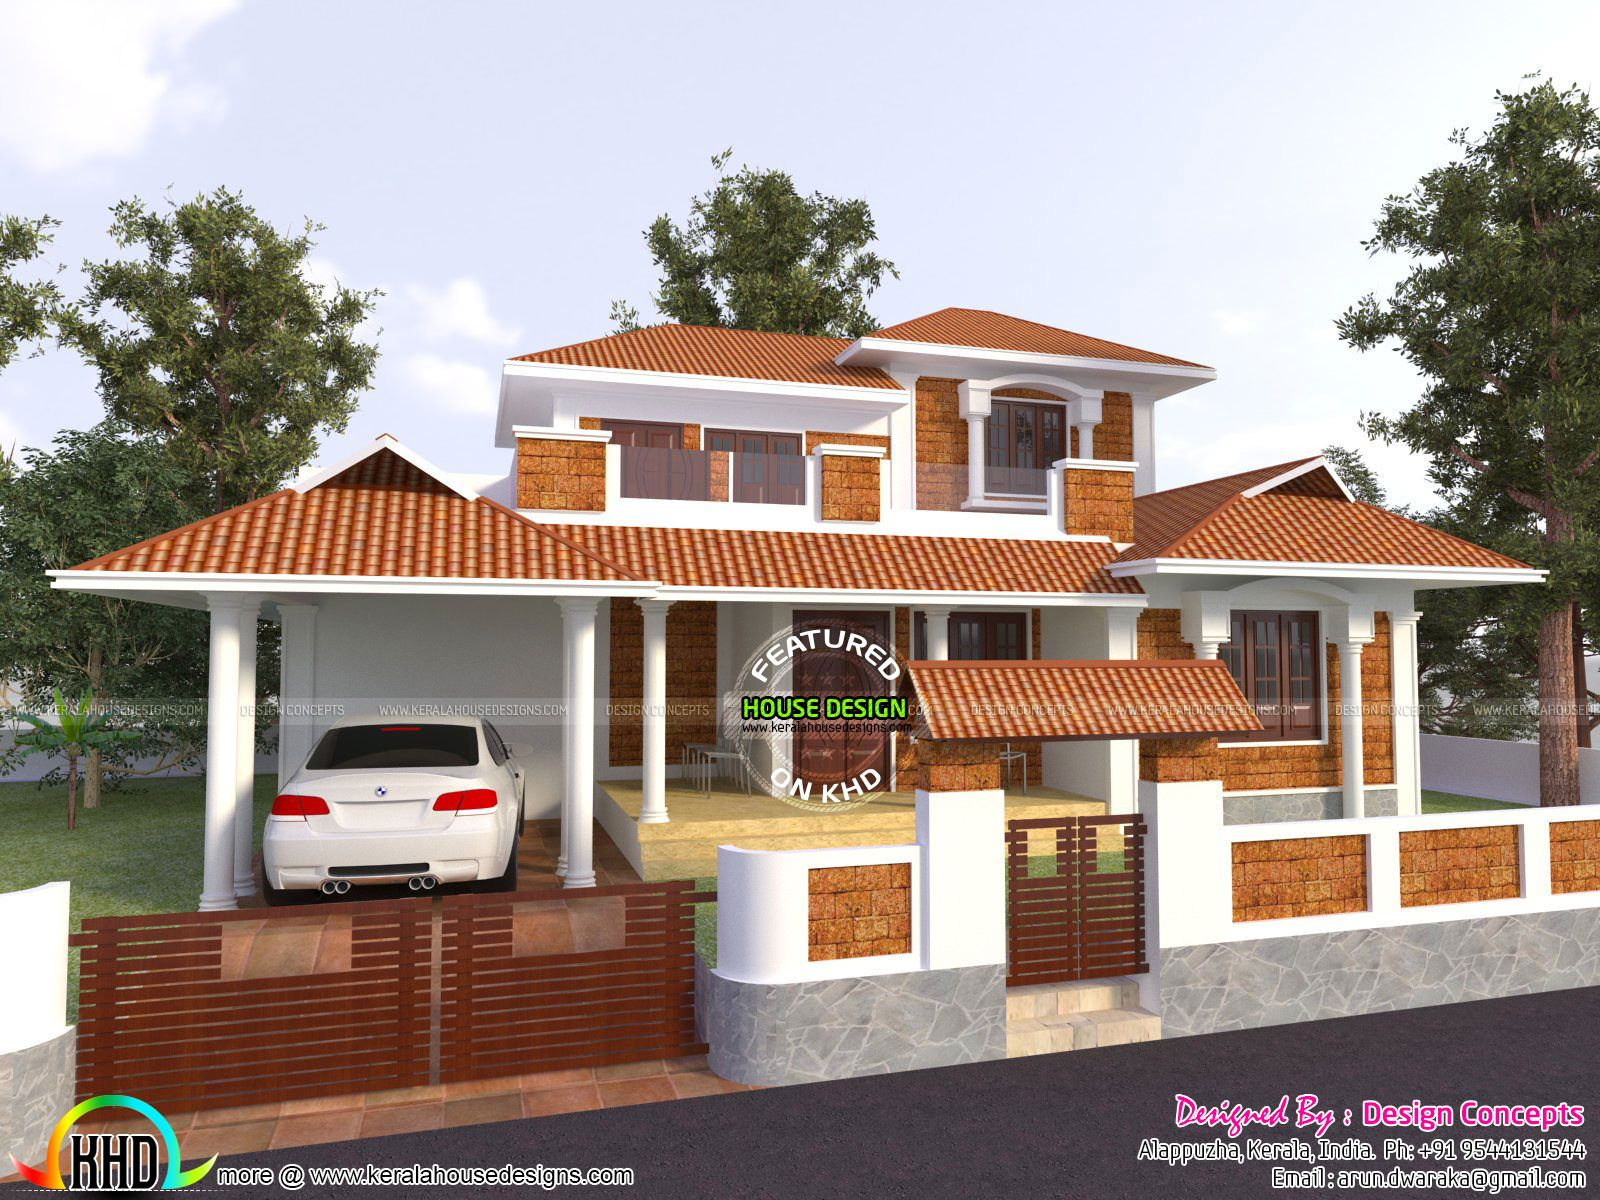 House design concept - Traditional House Jpg 1 600 1 200 Pixel